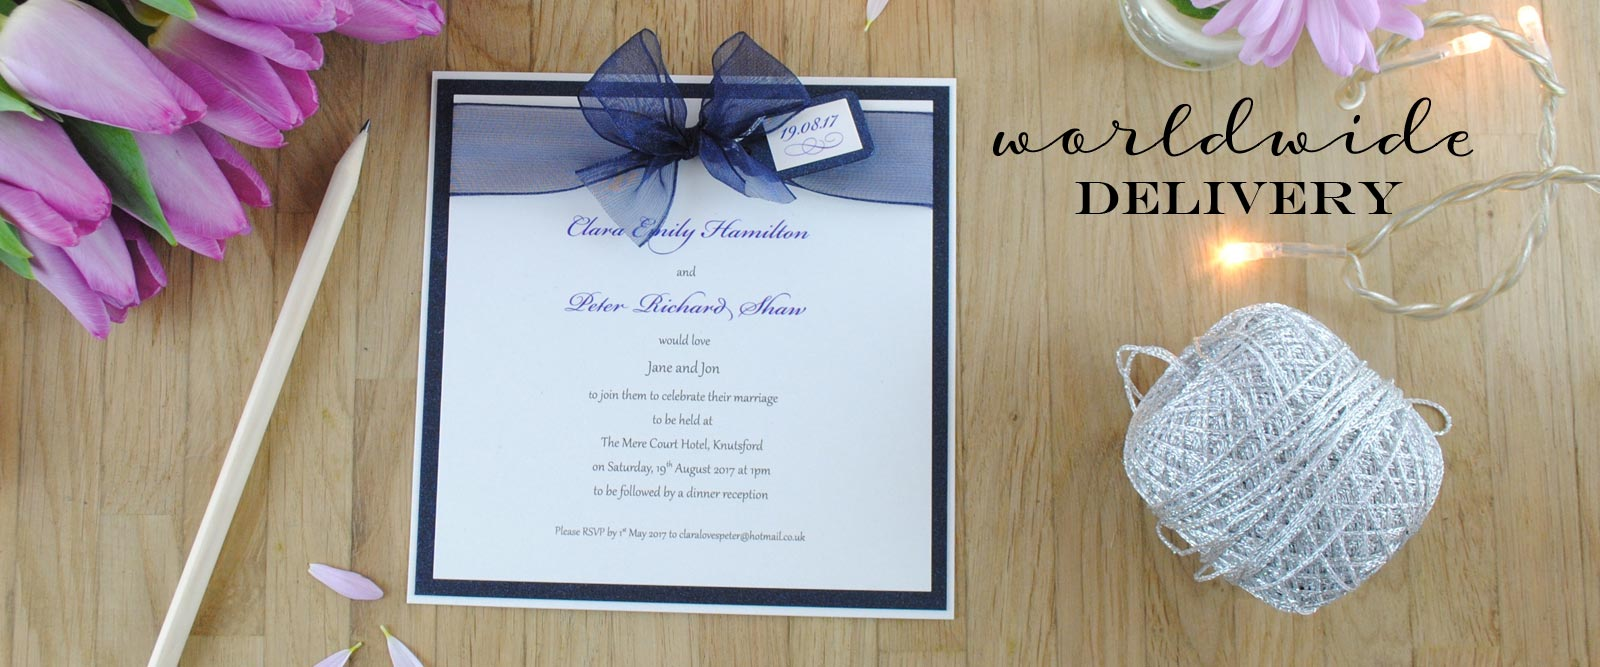 Luxury Handmade Wedding Invitations Wedding Stationery UK